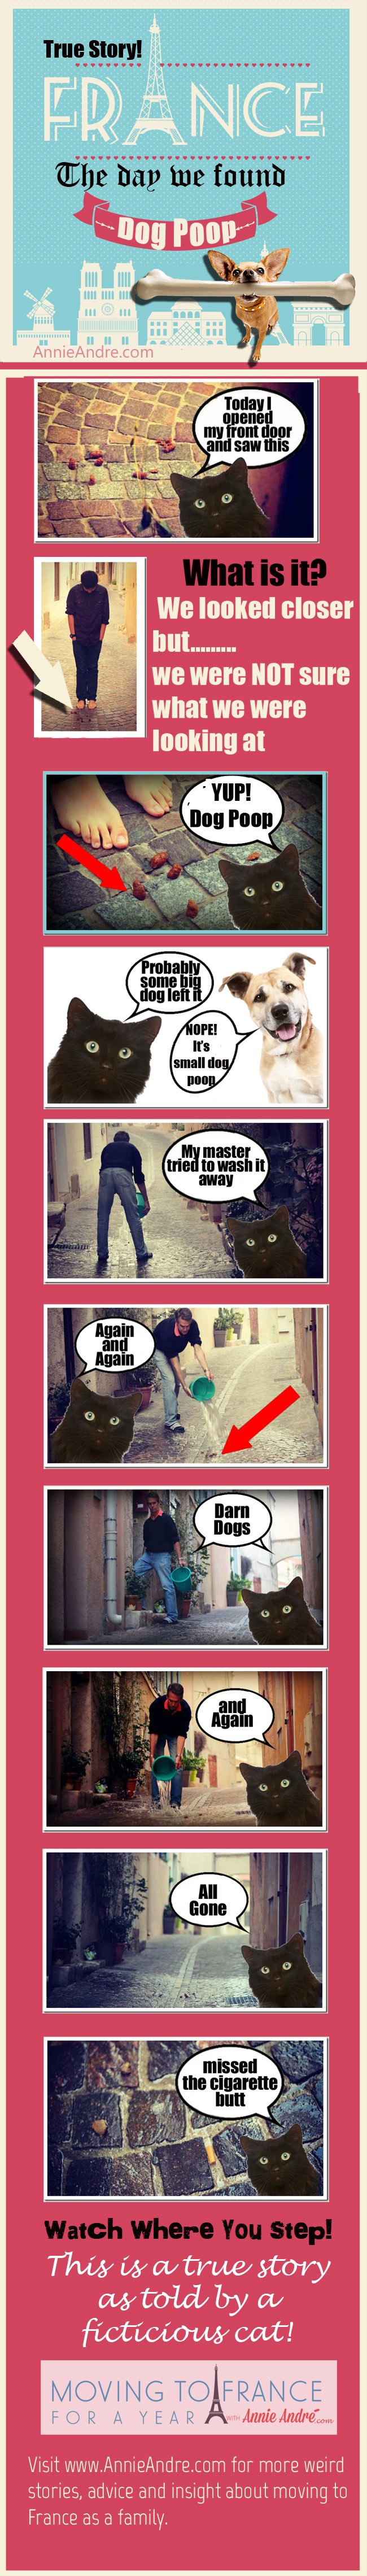 true story; The day we found Dog Poop on our front doorstep in France AGAIN!